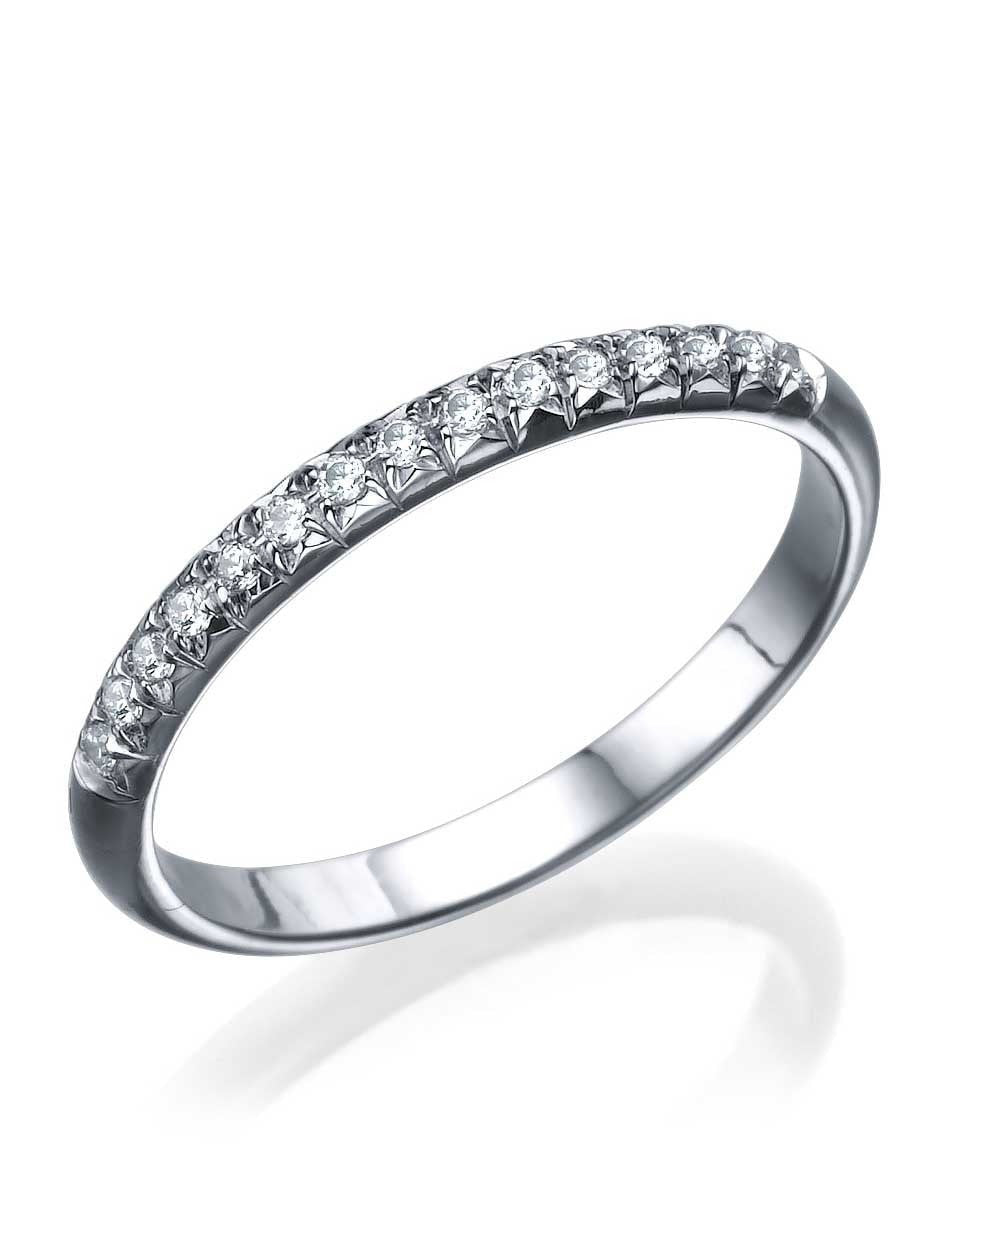 Wedding Rings White Gold Bands For Women